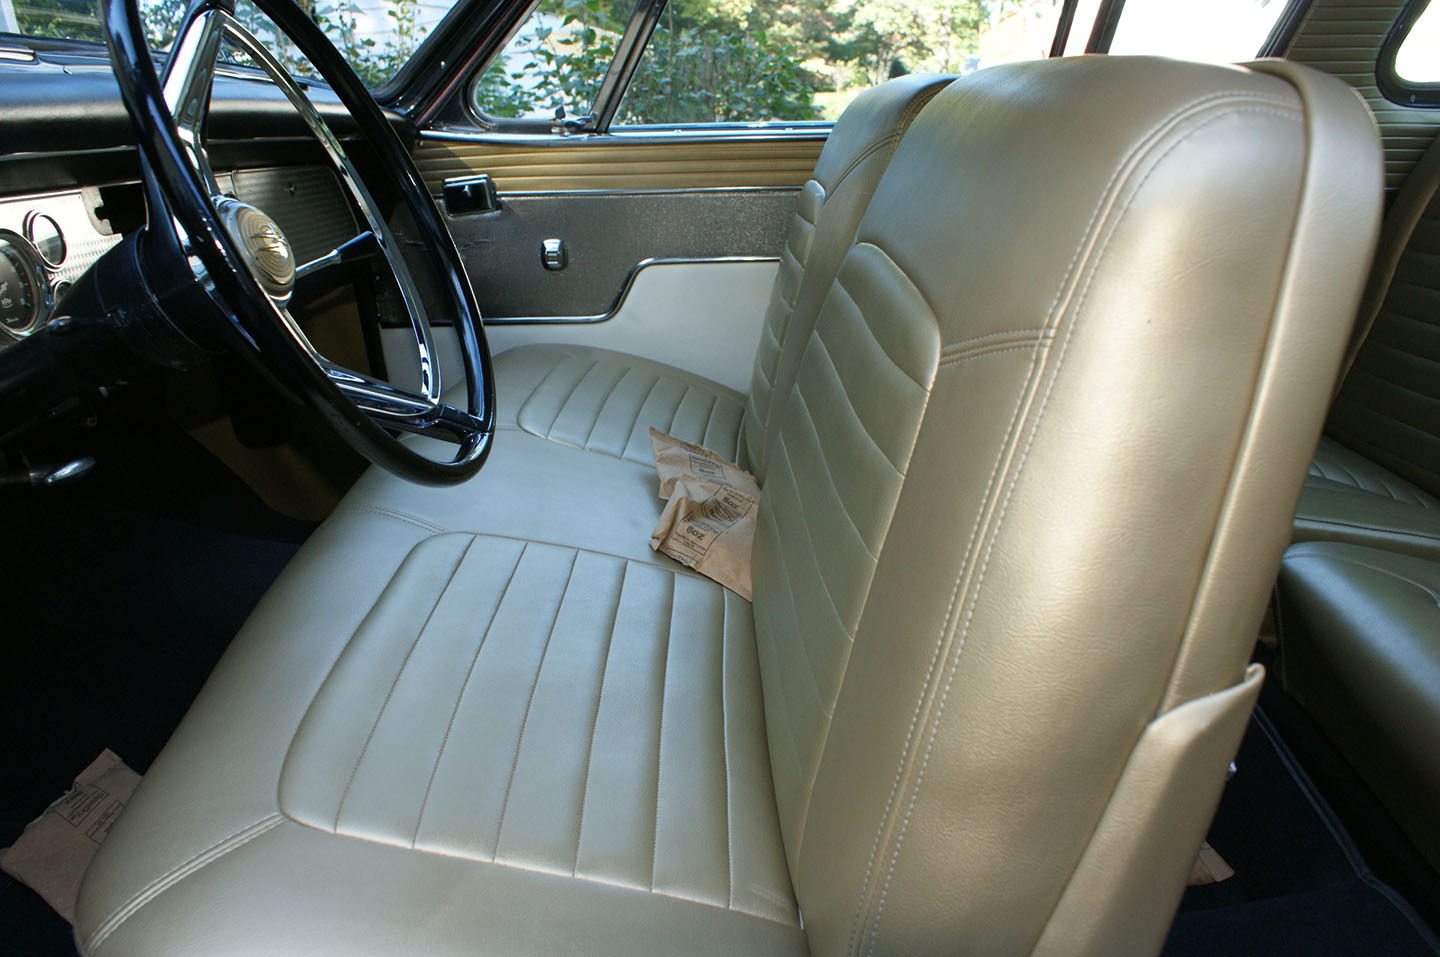 Interior of this 1957 Golden Hawk appears to be in nice original condition.